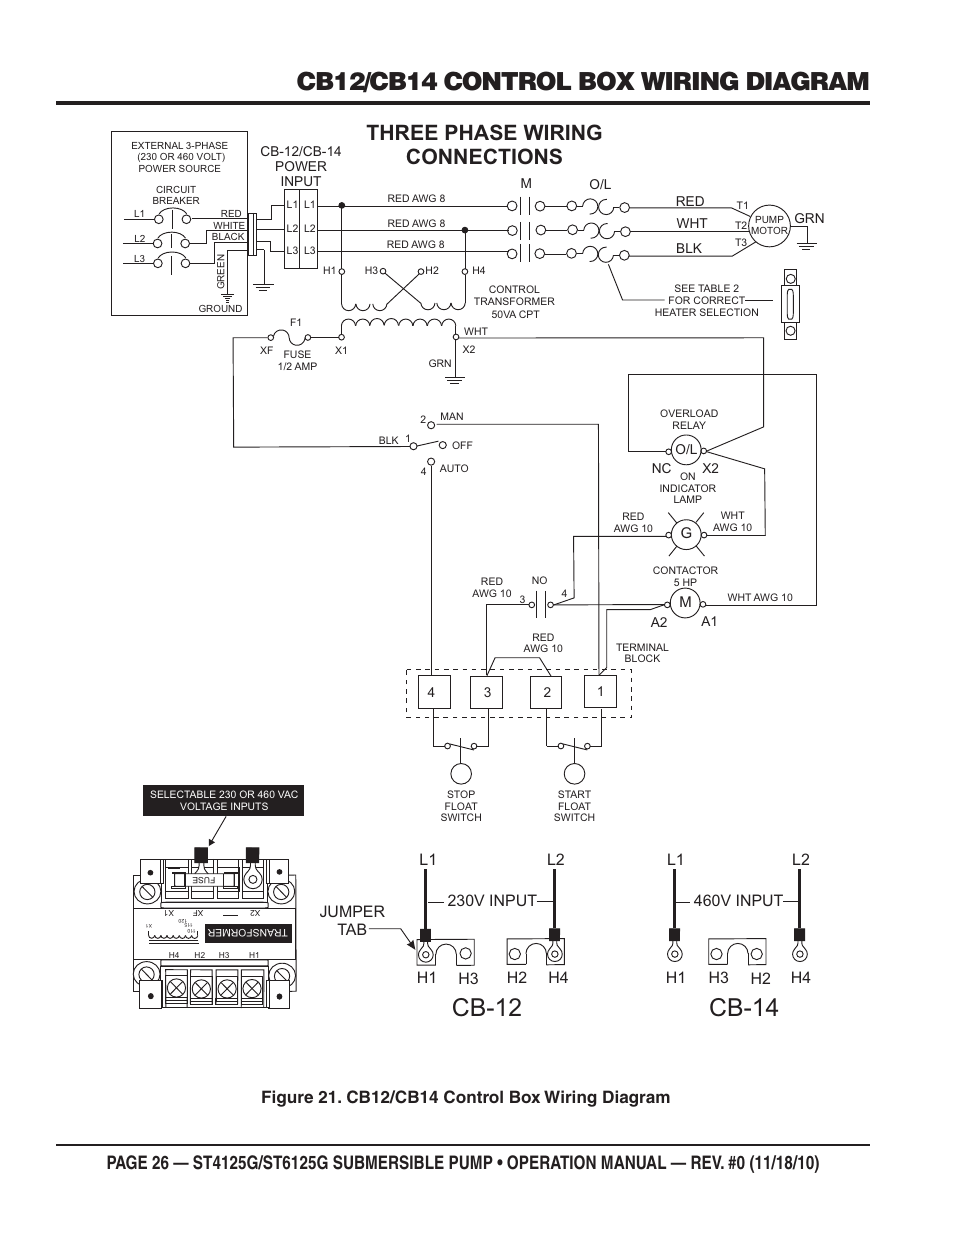 Multiple Pump Control Box Wiring Diagram : cb12 cb14 control box wiring diagram cb 12 cb 14 ~ A.2002-acura-tl-radio.info Haus und Dekorationen